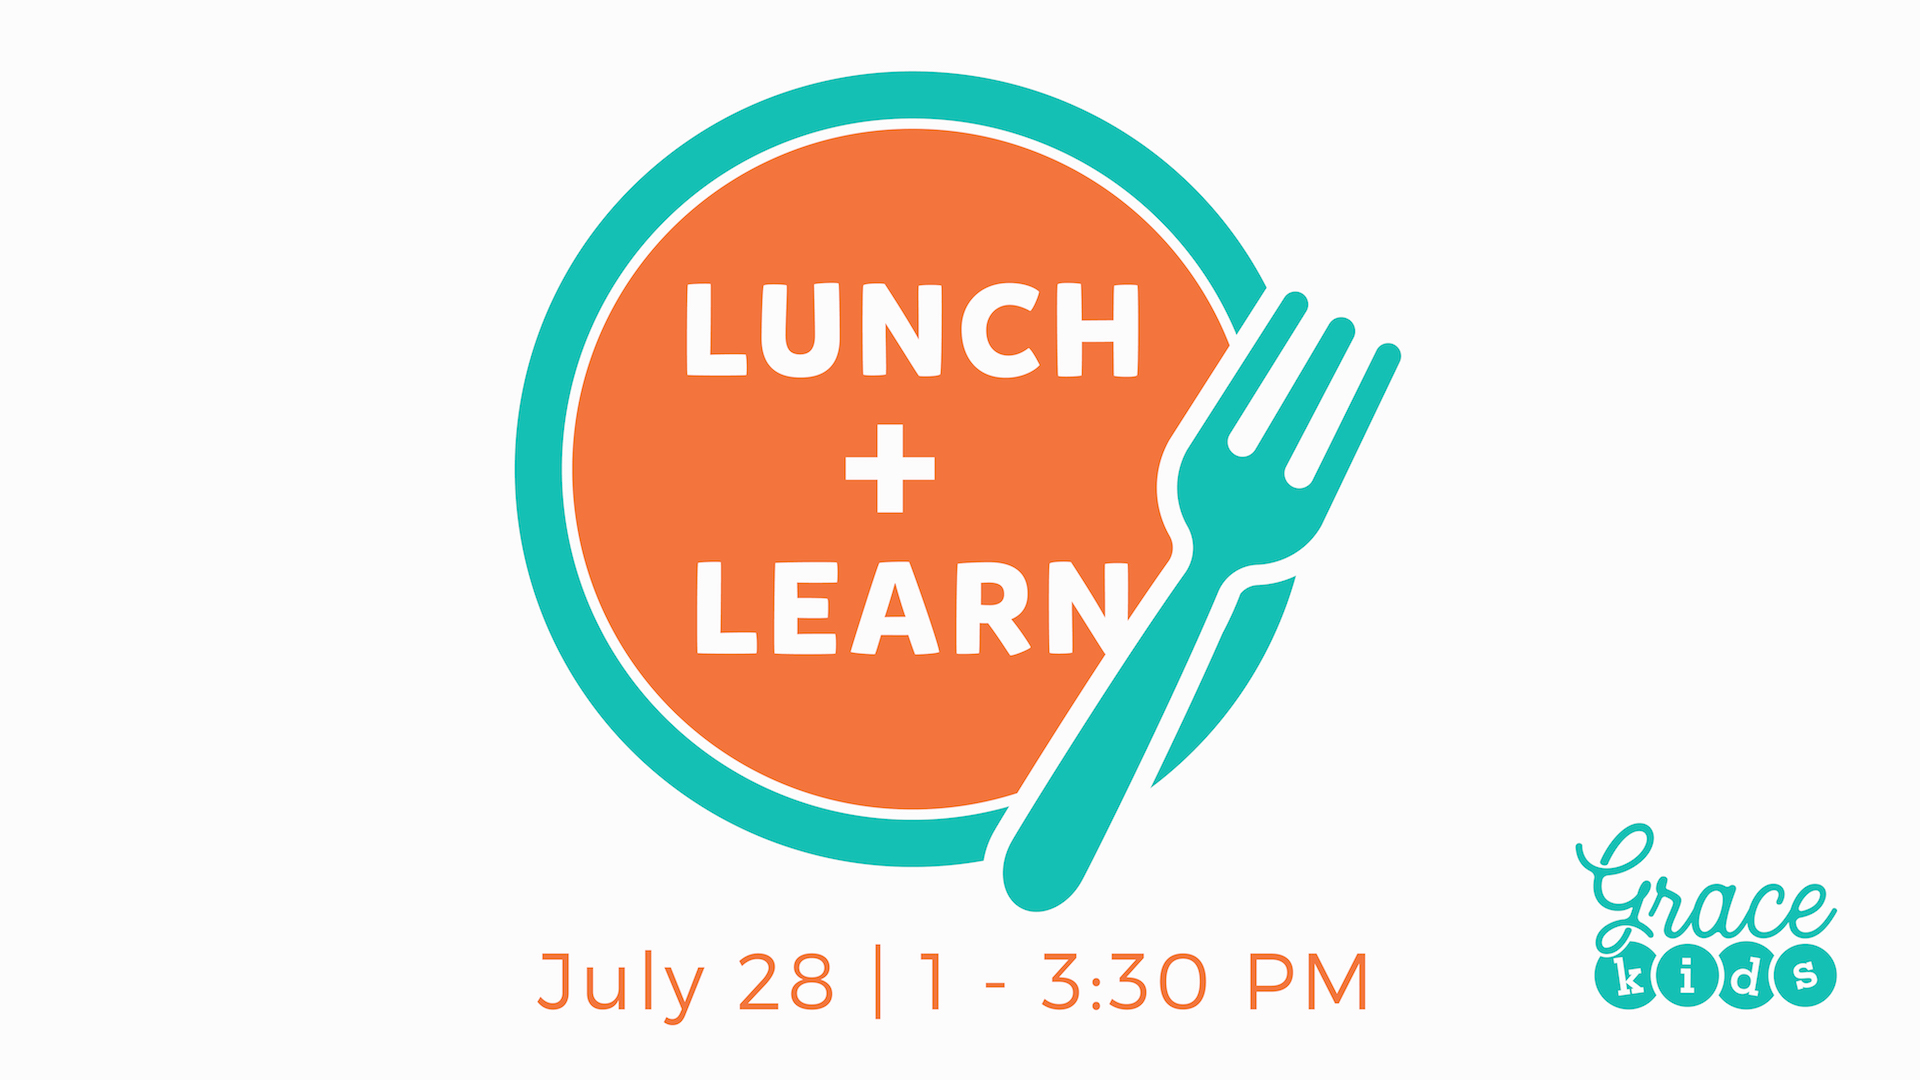 Grace Kids Lunch and Learn Detail.jpg